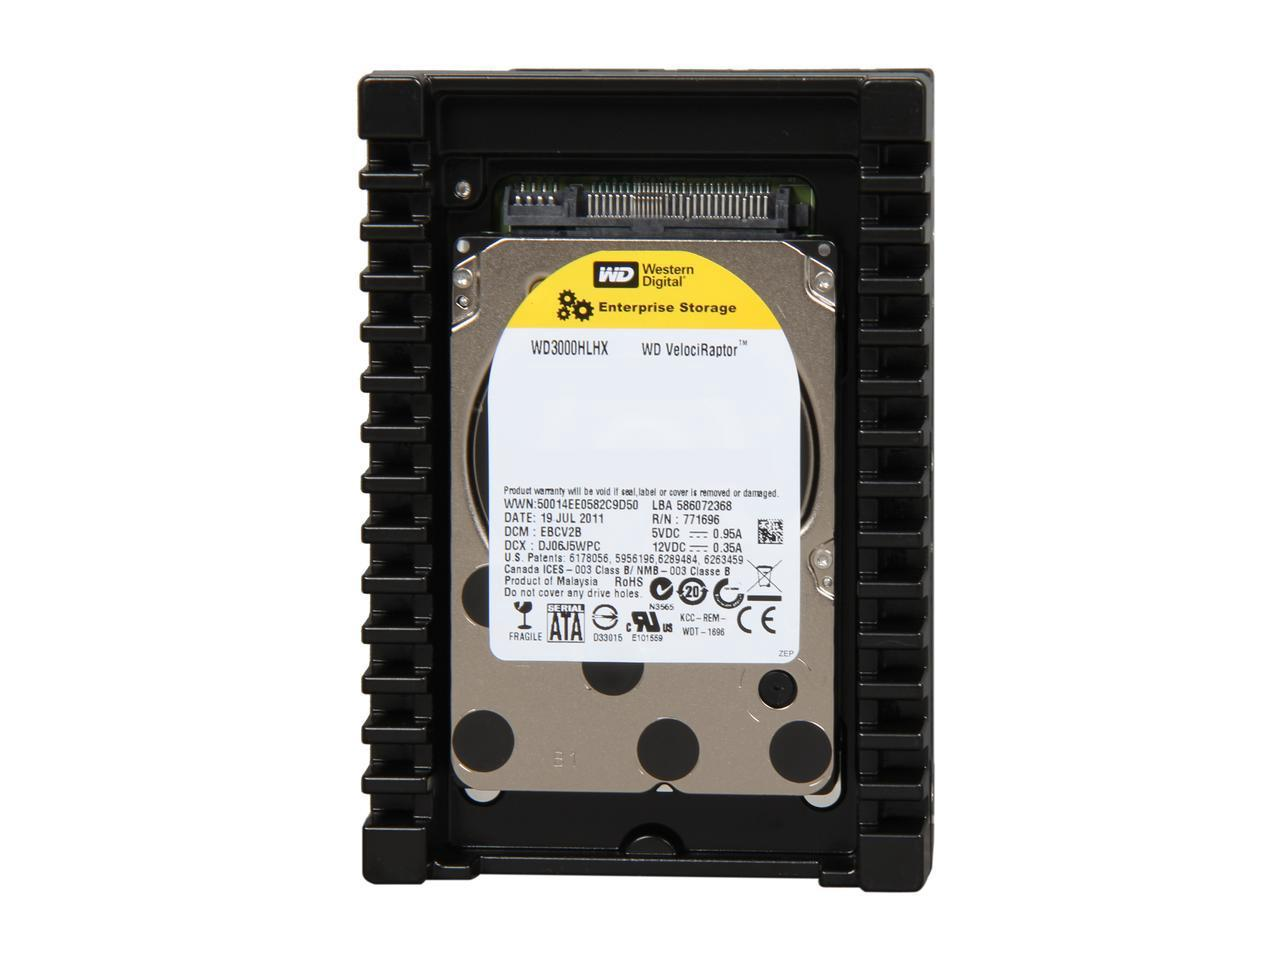 Western Digital 300GB VelociRaptor 10K RPM 32MB Cache 2.5